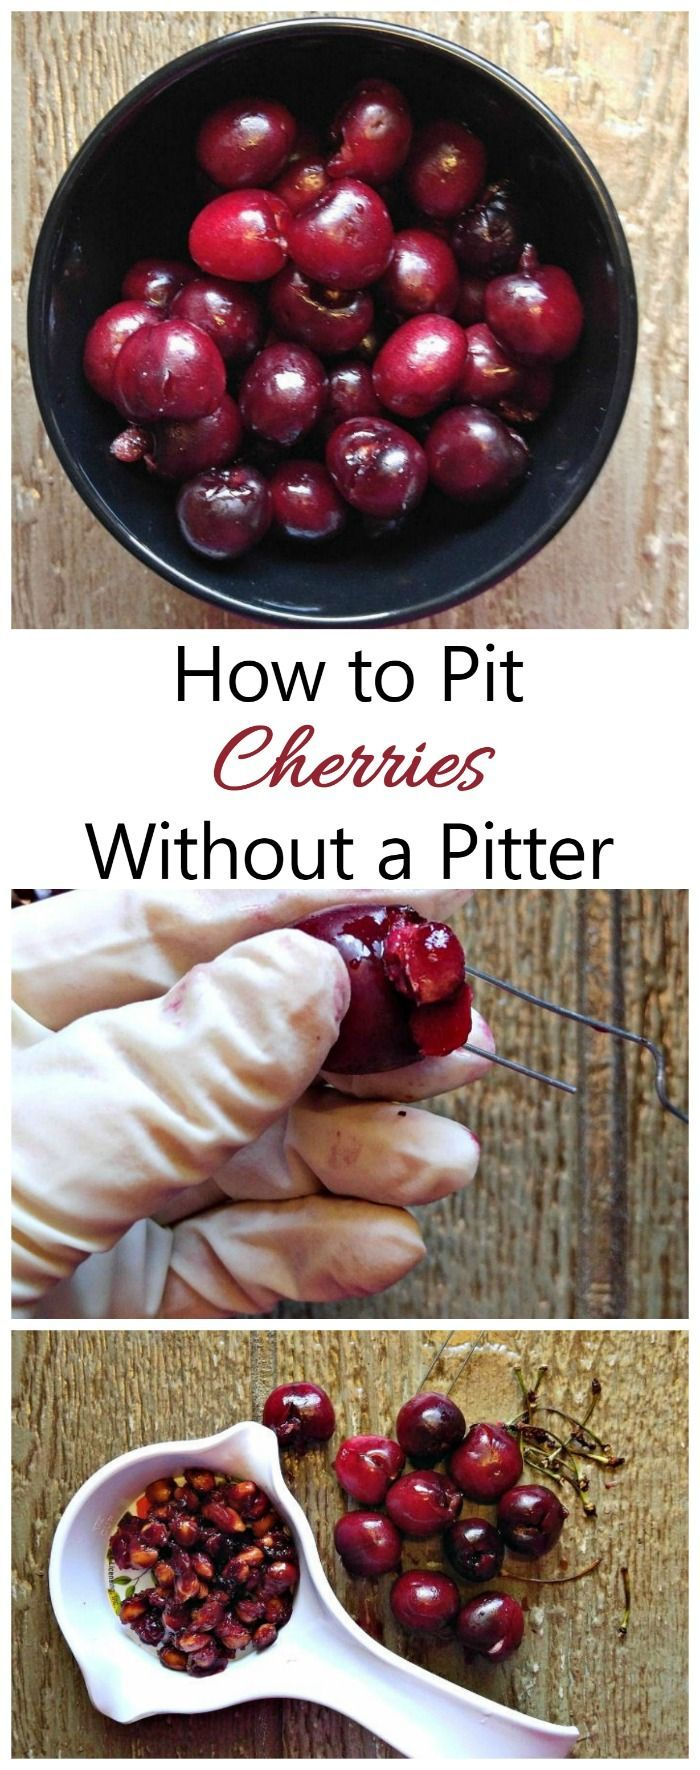 To pit cherries without a cherry pitter needs just one simple office supply - a large paper clip!